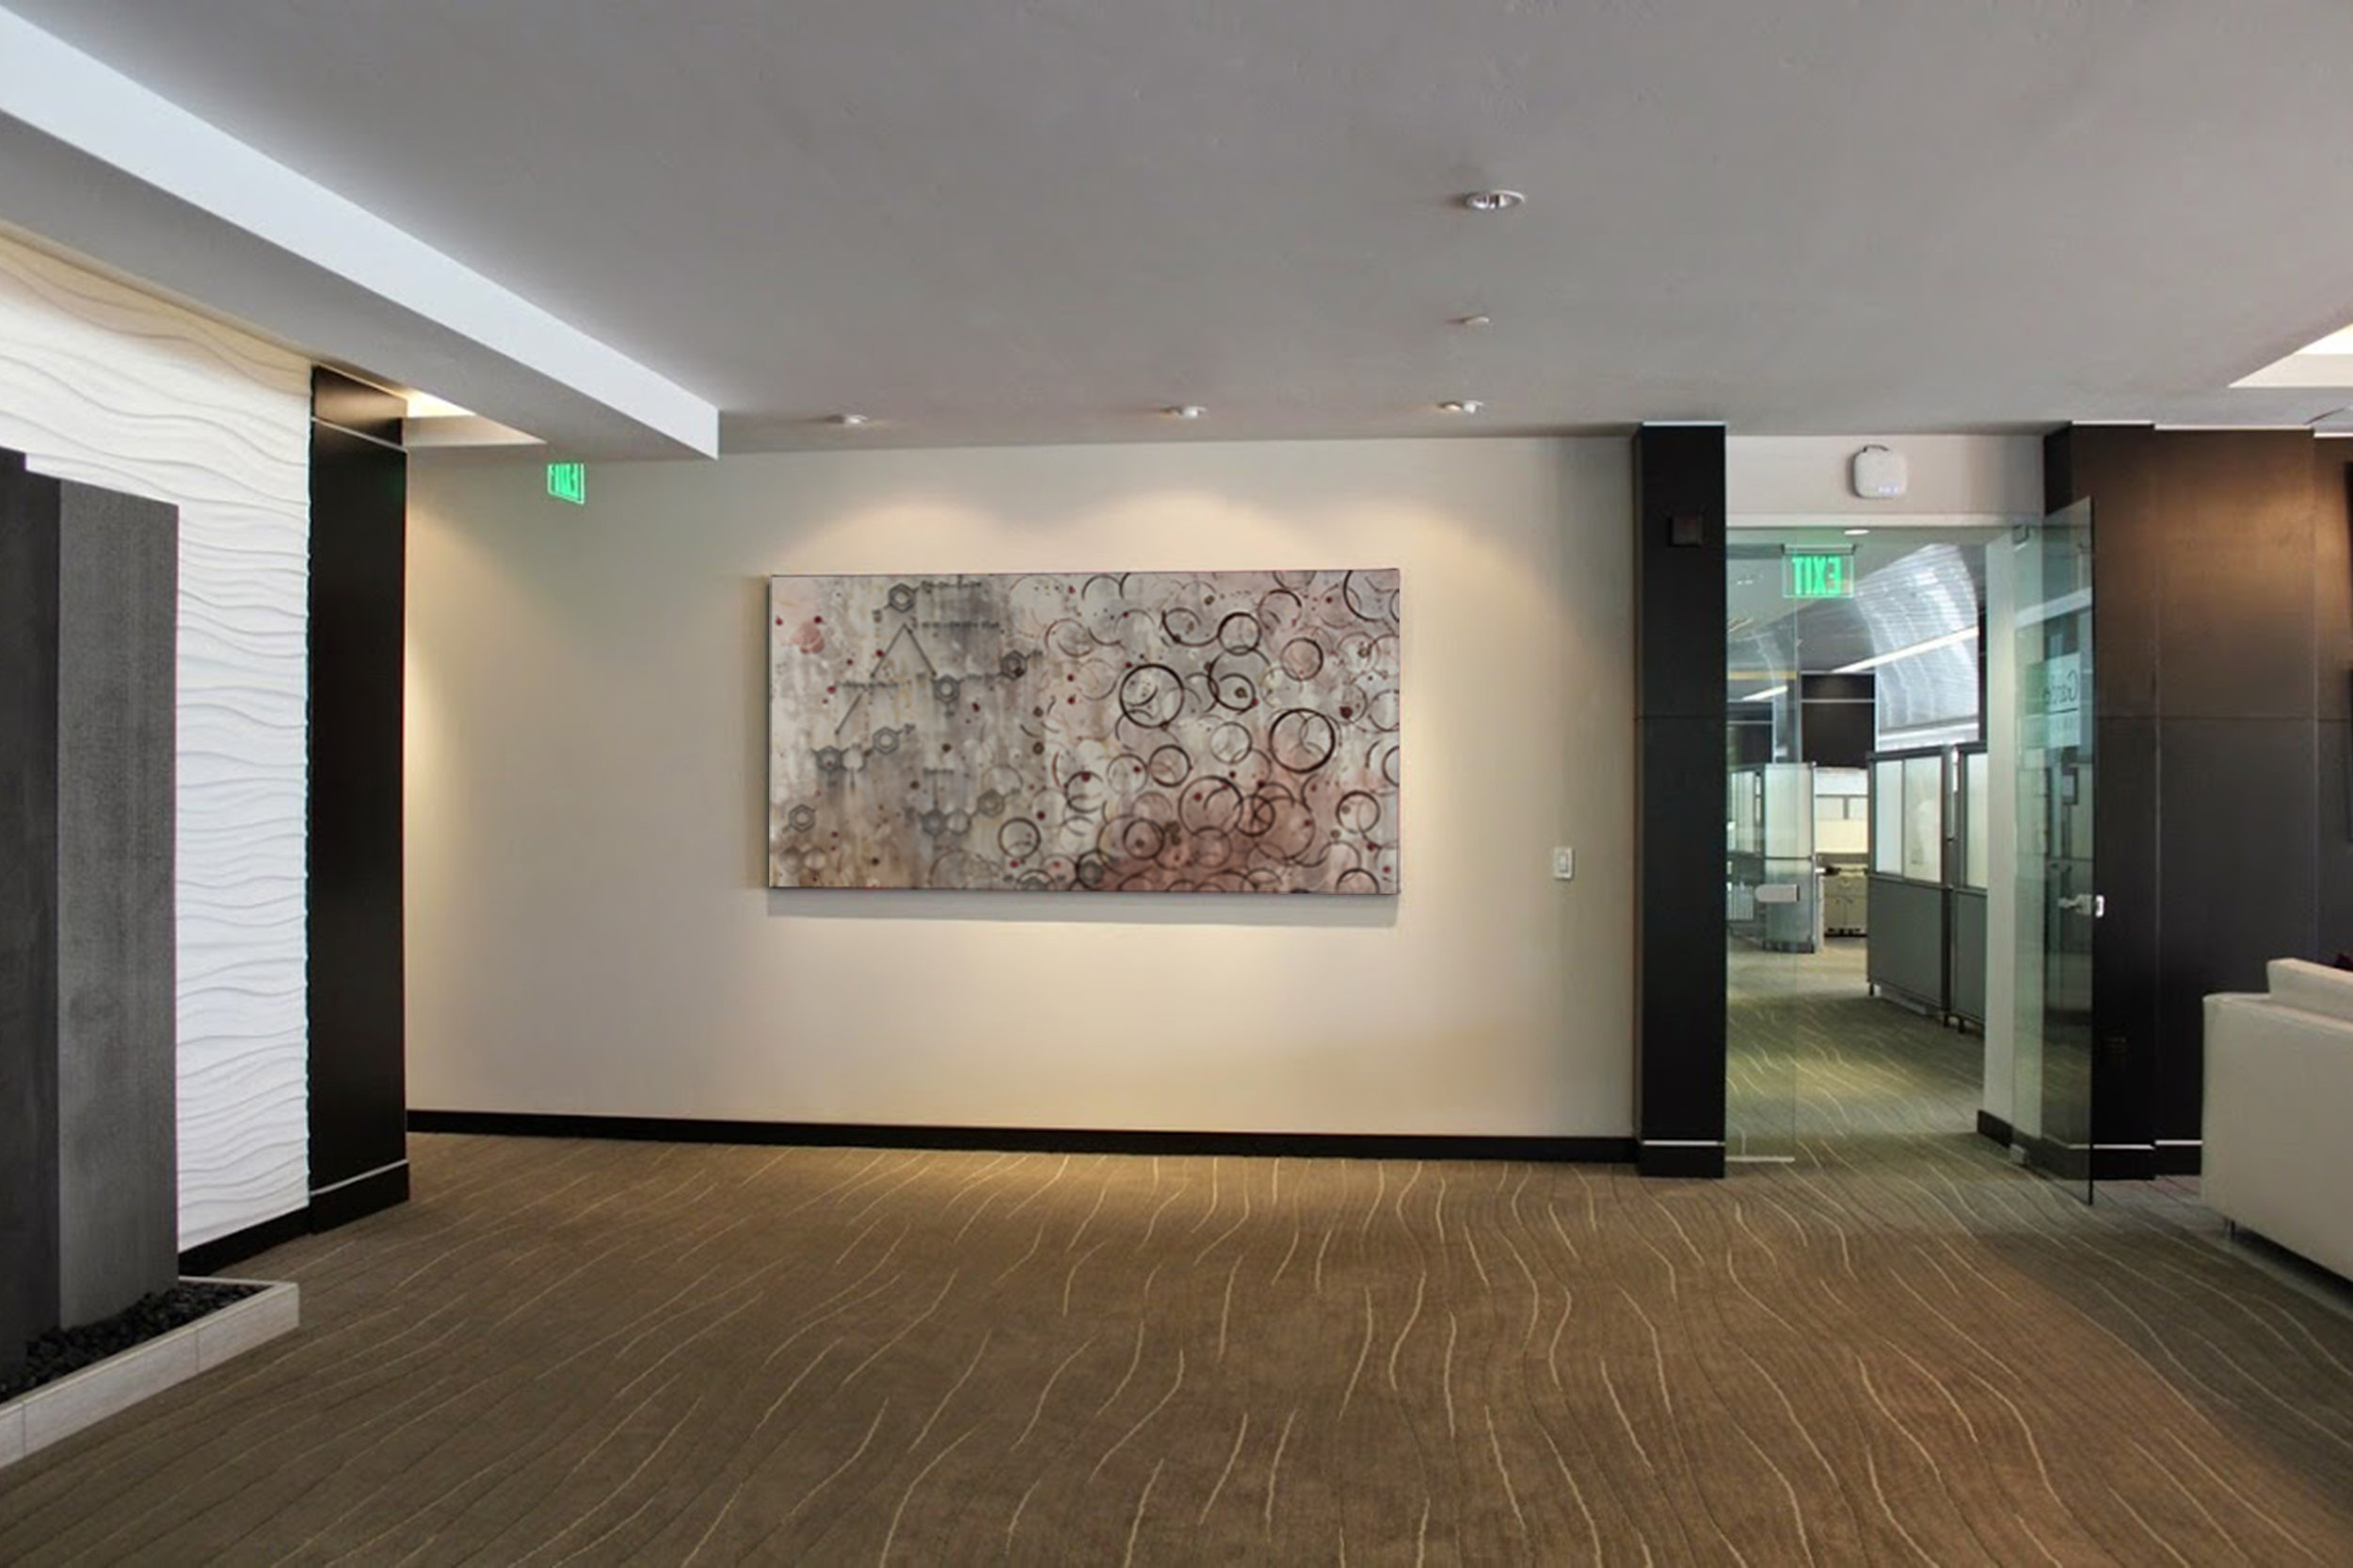 Chemical Still Life abstract art by Taylor Smith Artist in Corporate Art Collection Lobby.jpg